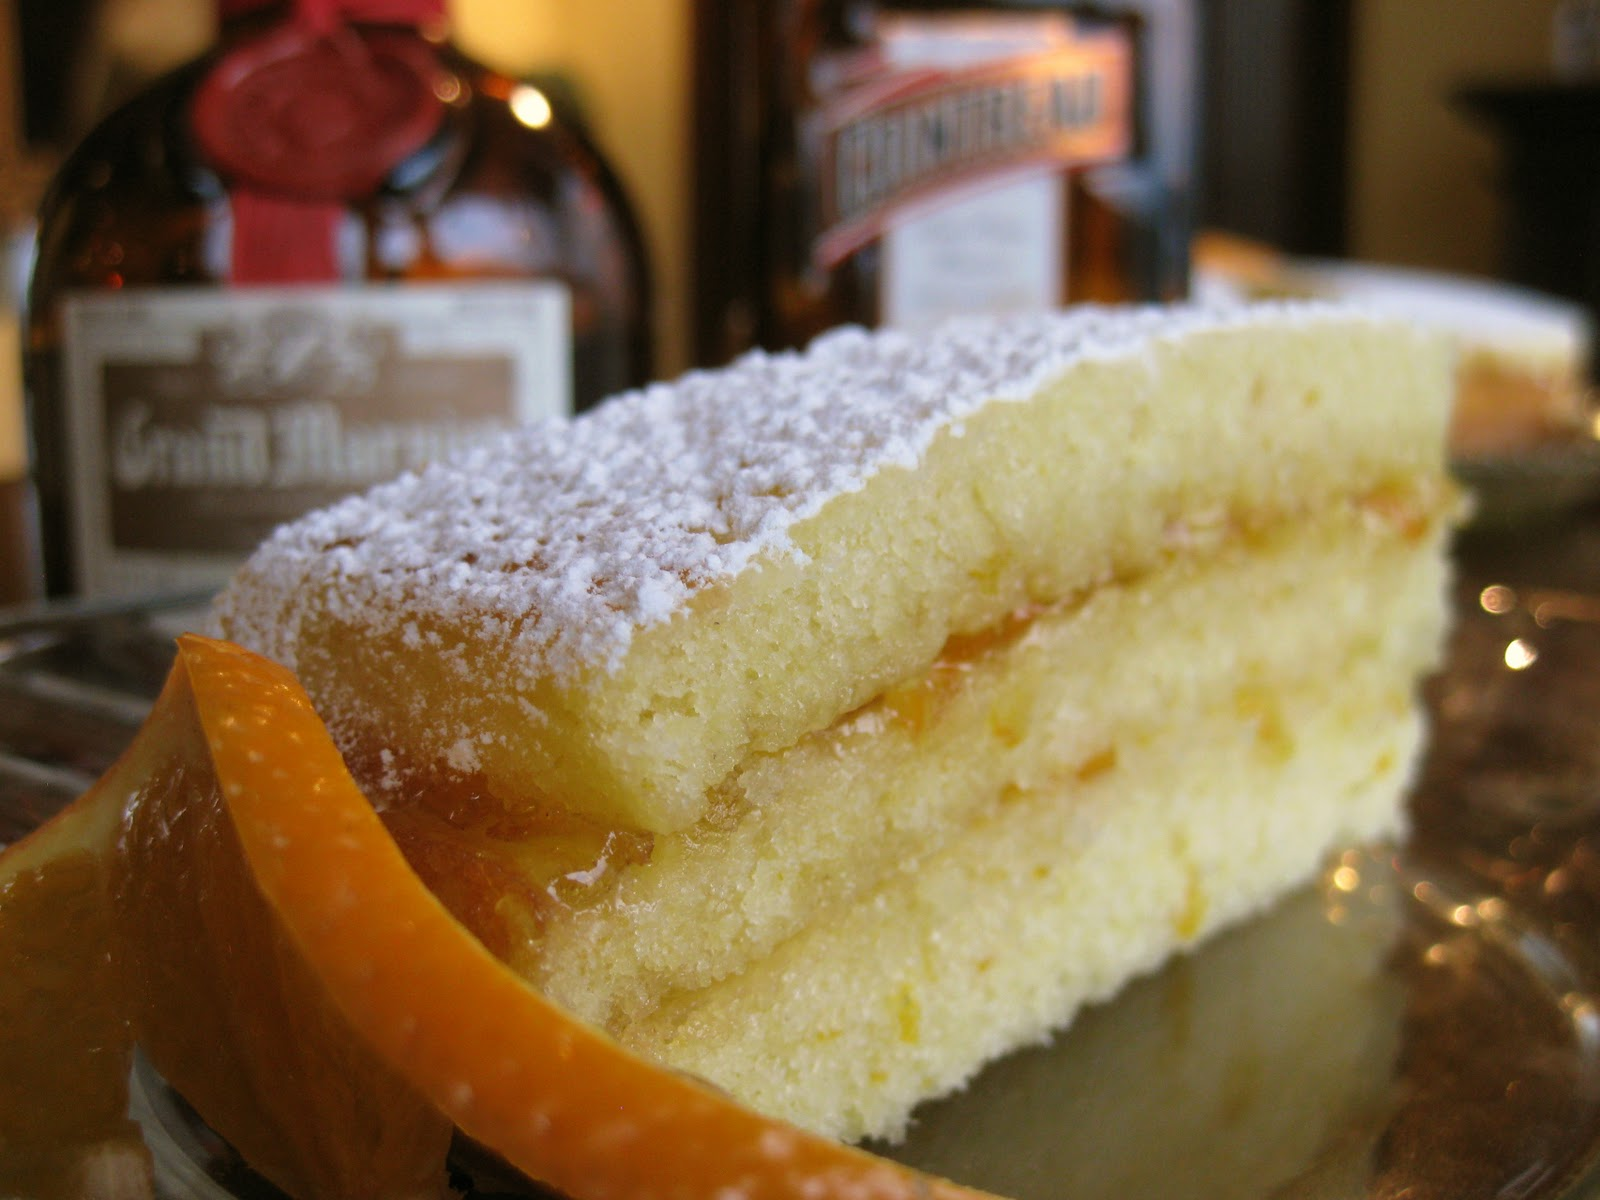 How To Make Maria Luisa Cake